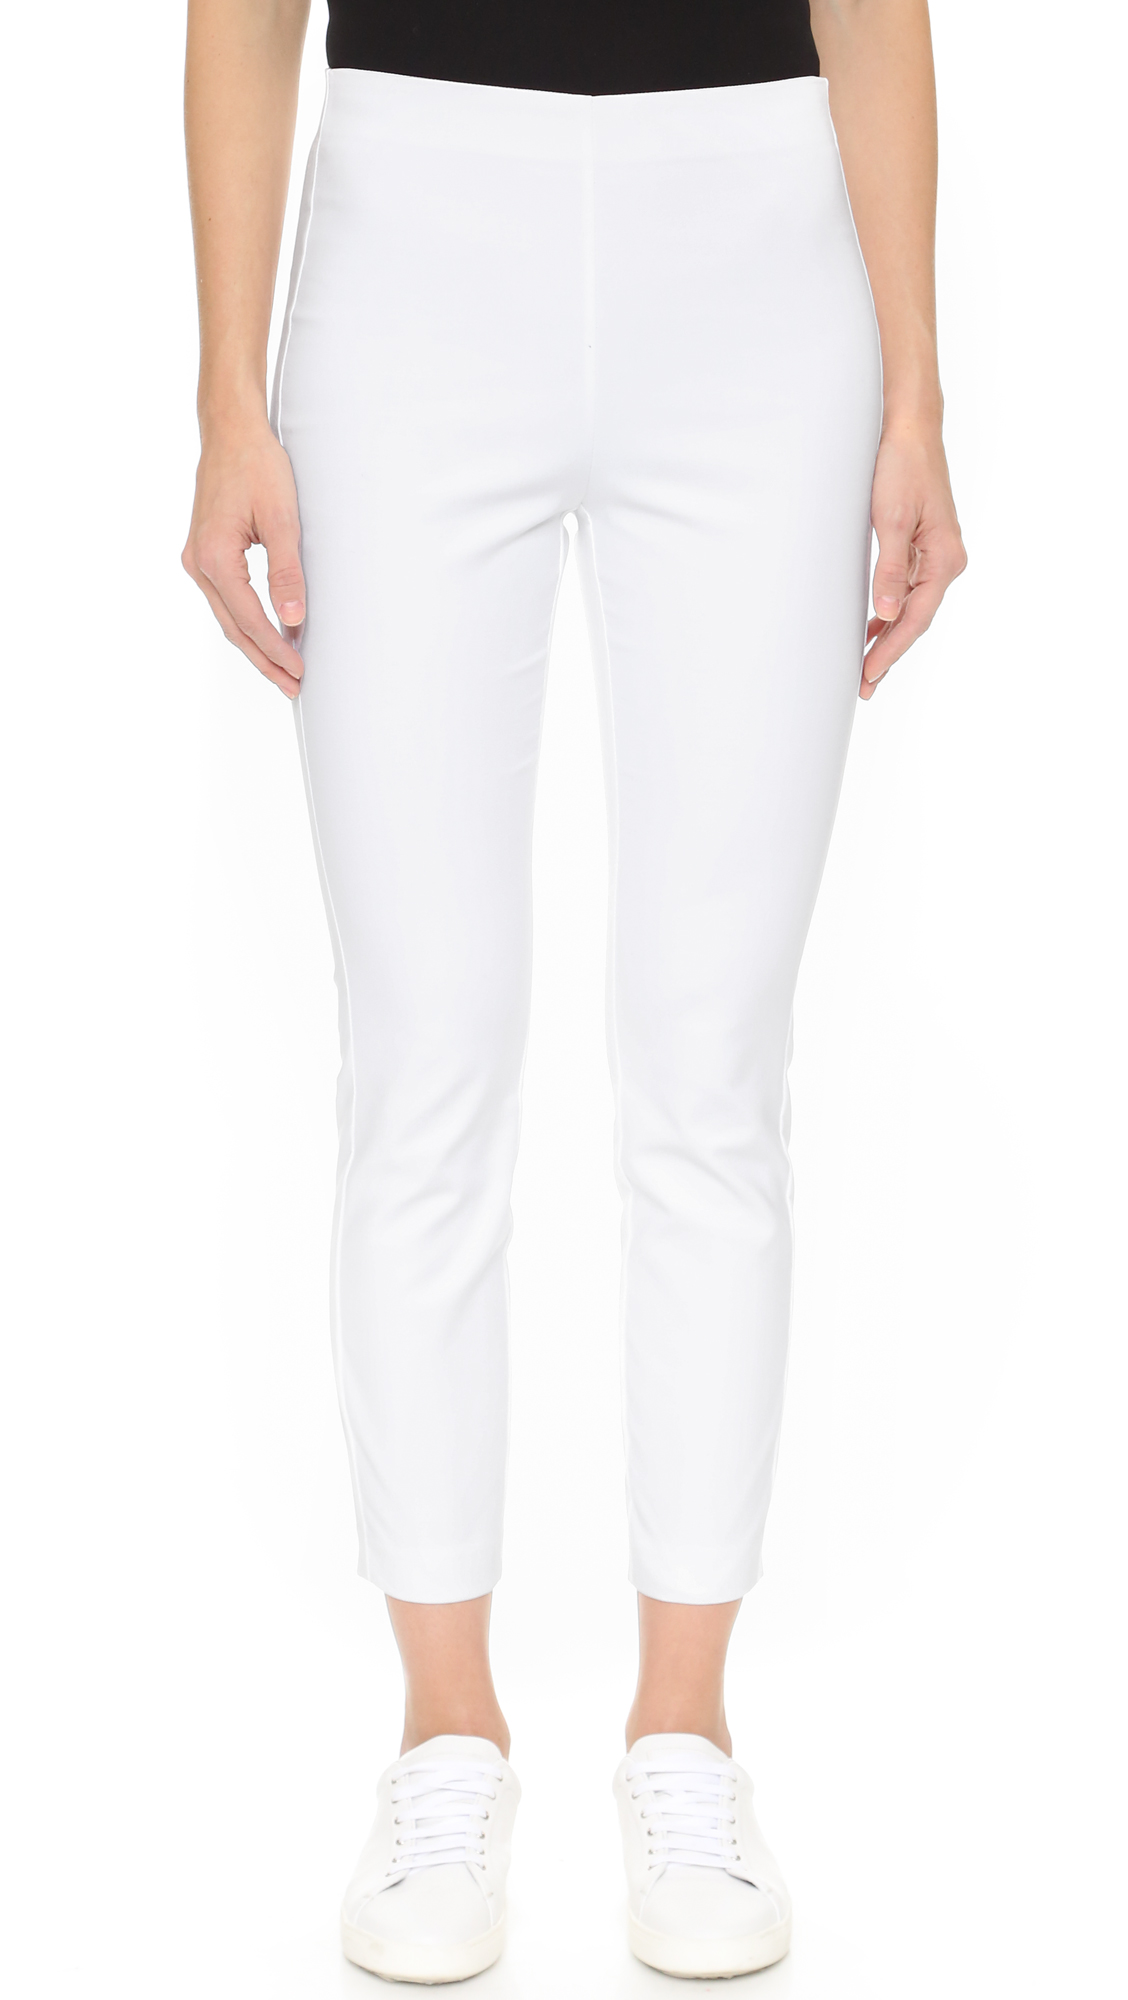 Rag & Bone Simone Pants - White